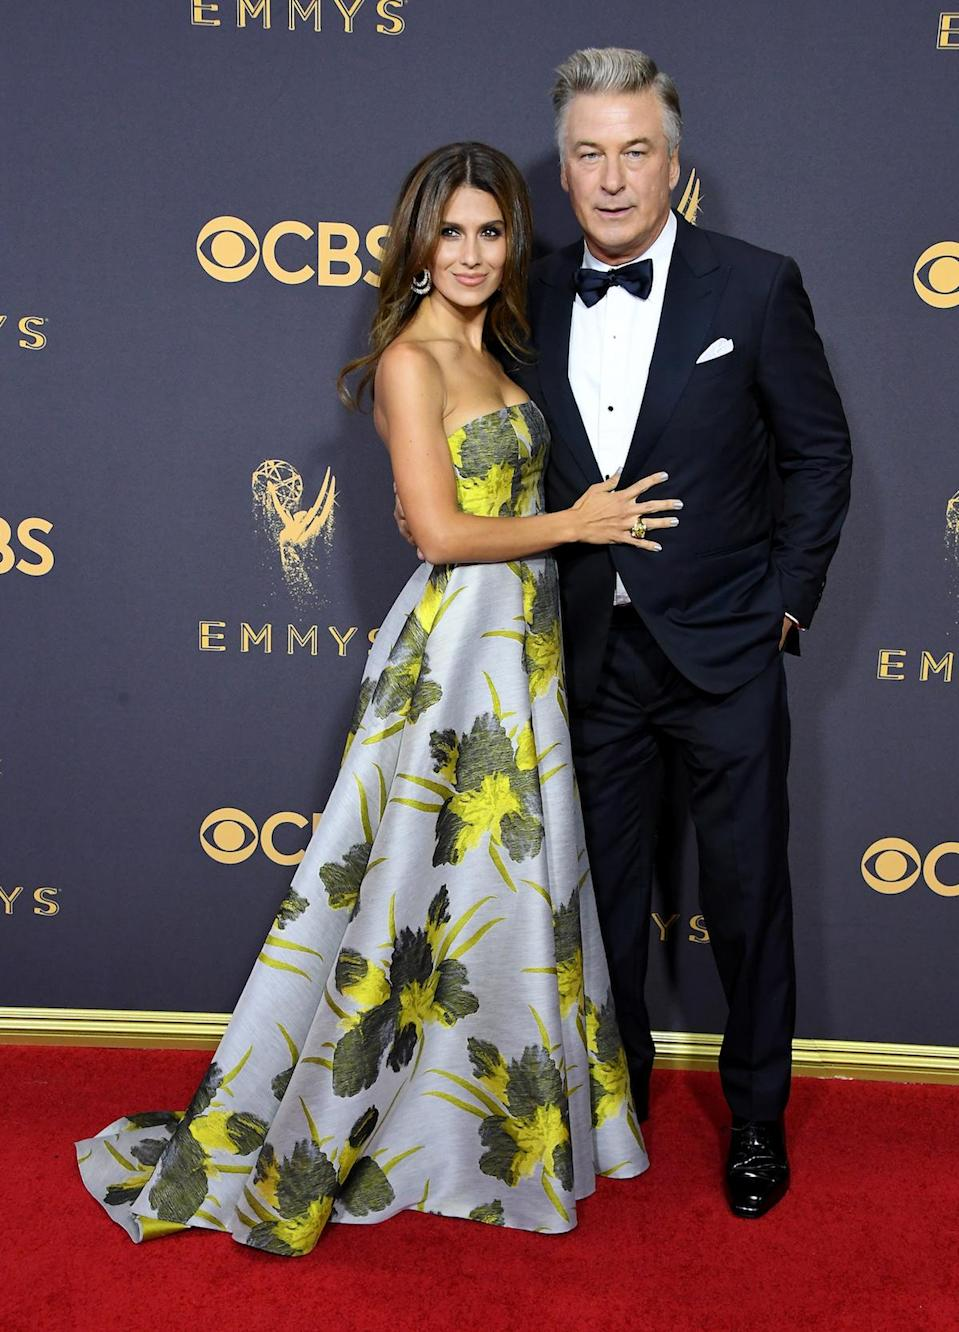 <p>Alec and Hilaria Baldwin attends the 69th Annual Primetime Emmy Awards on September 17, 2017. (Photo: Getty Images) </p>